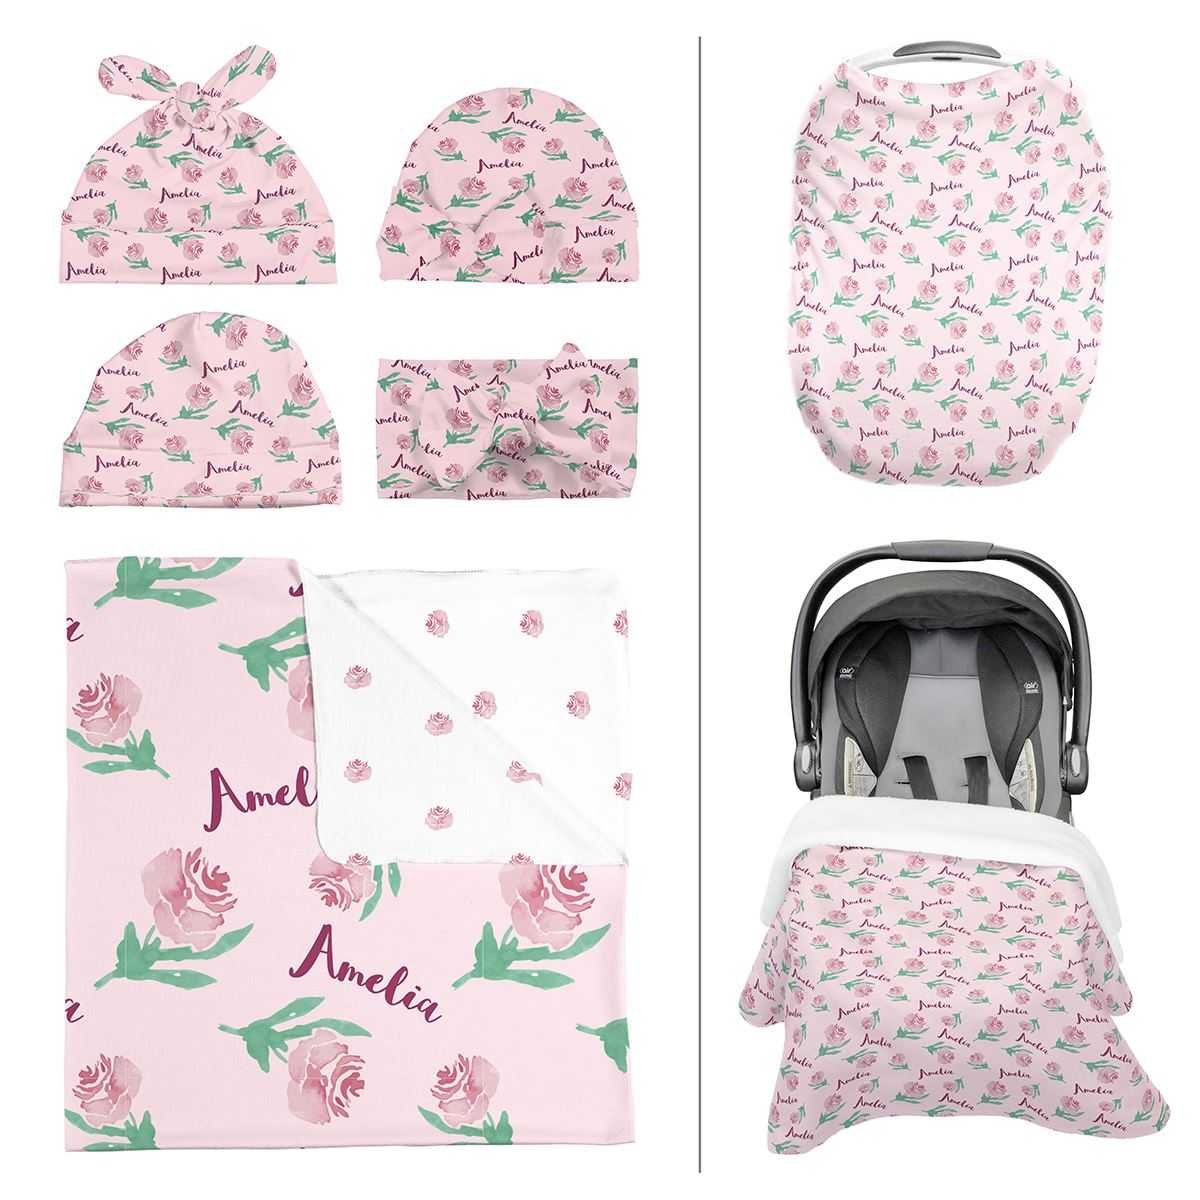 Amelia's Antique Rose | Take Me Home Bundle